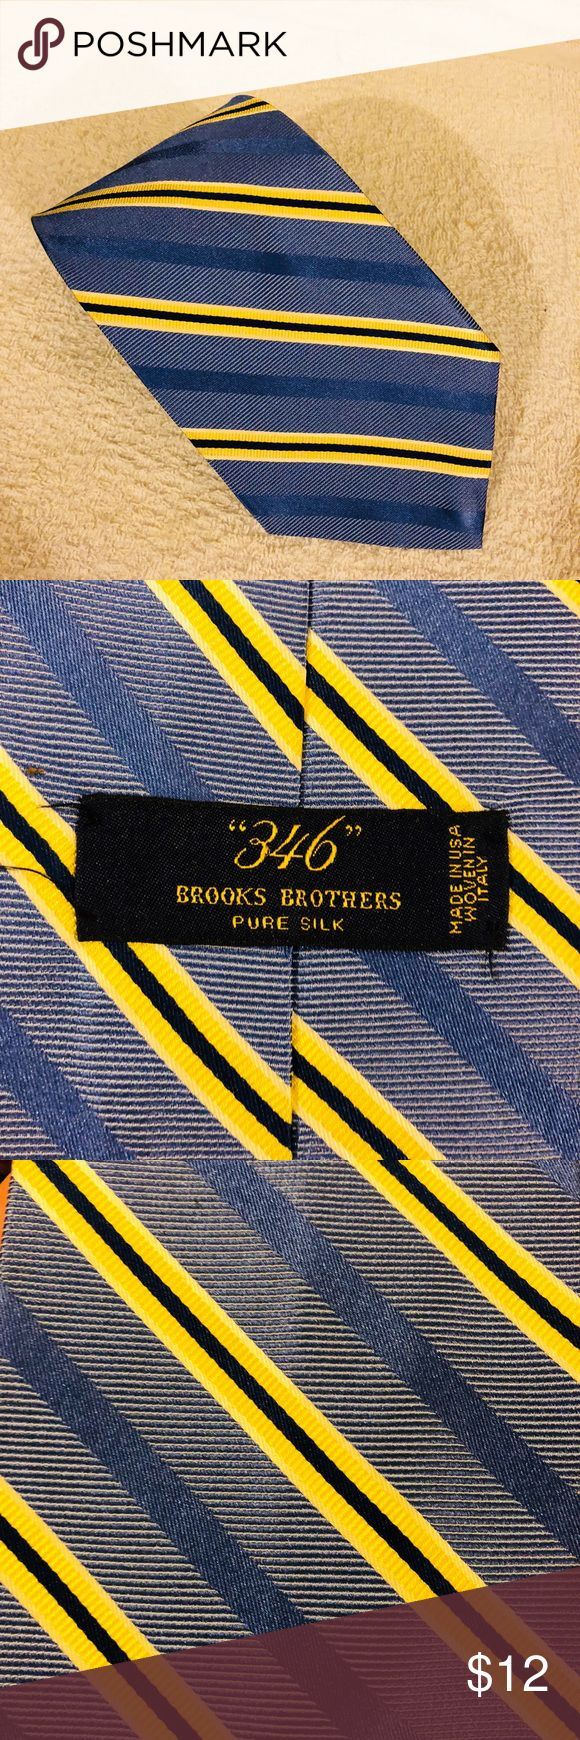 Brooks Brothers Blue w/ Yellow & Navy Stripe Tie Brooks Brothers Blue with Yellow, Navy Blue and White Stripe Silk Necktie! Like new! Please make reasonable offers and bundle! Ask questions! Brooks Brothers Accessories Ties